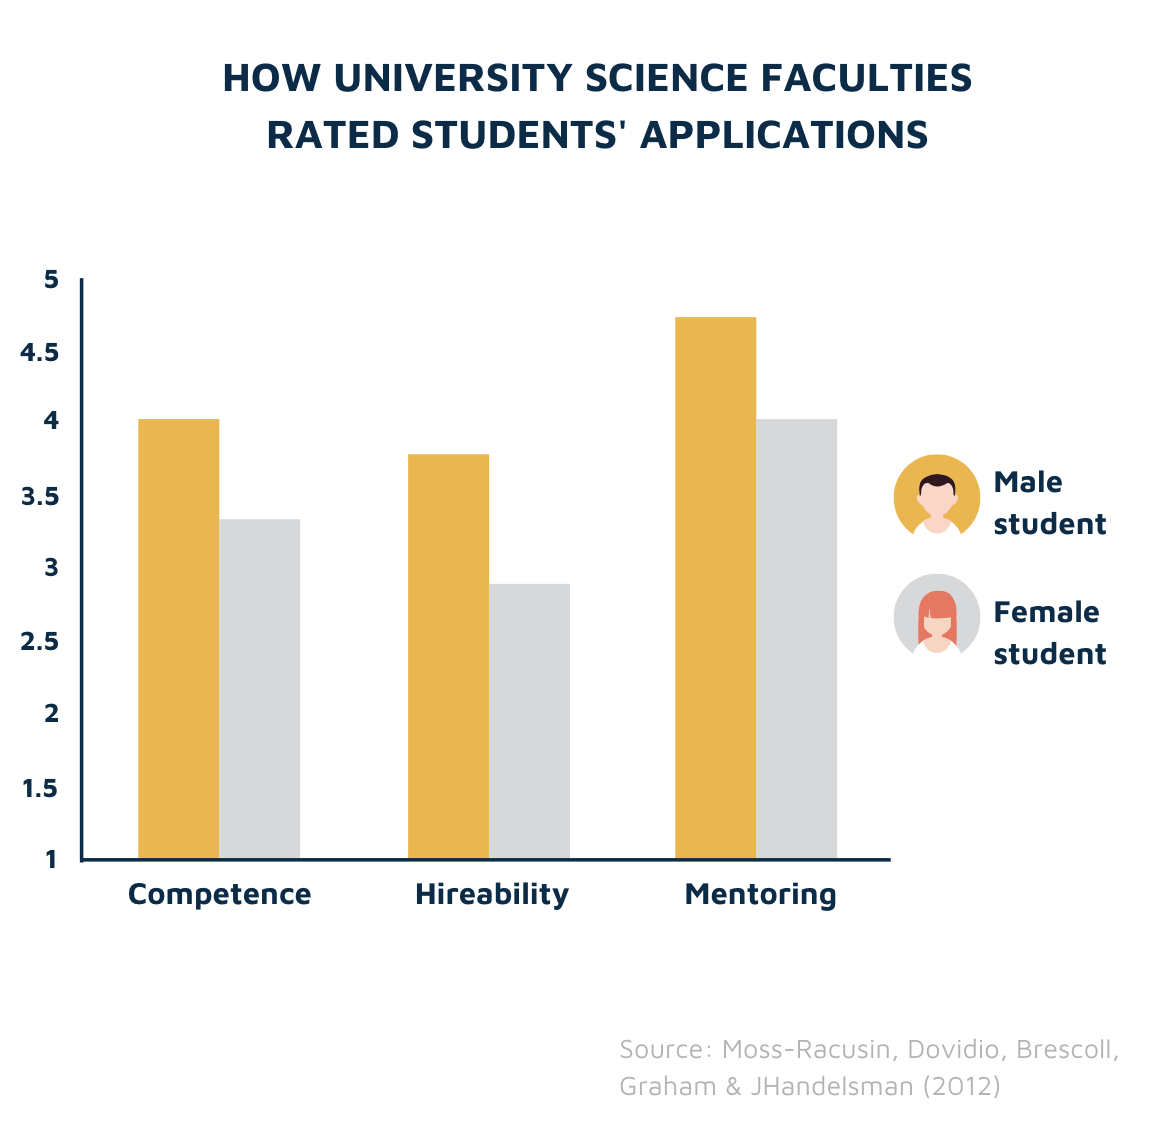 How science departments rated applications by gender